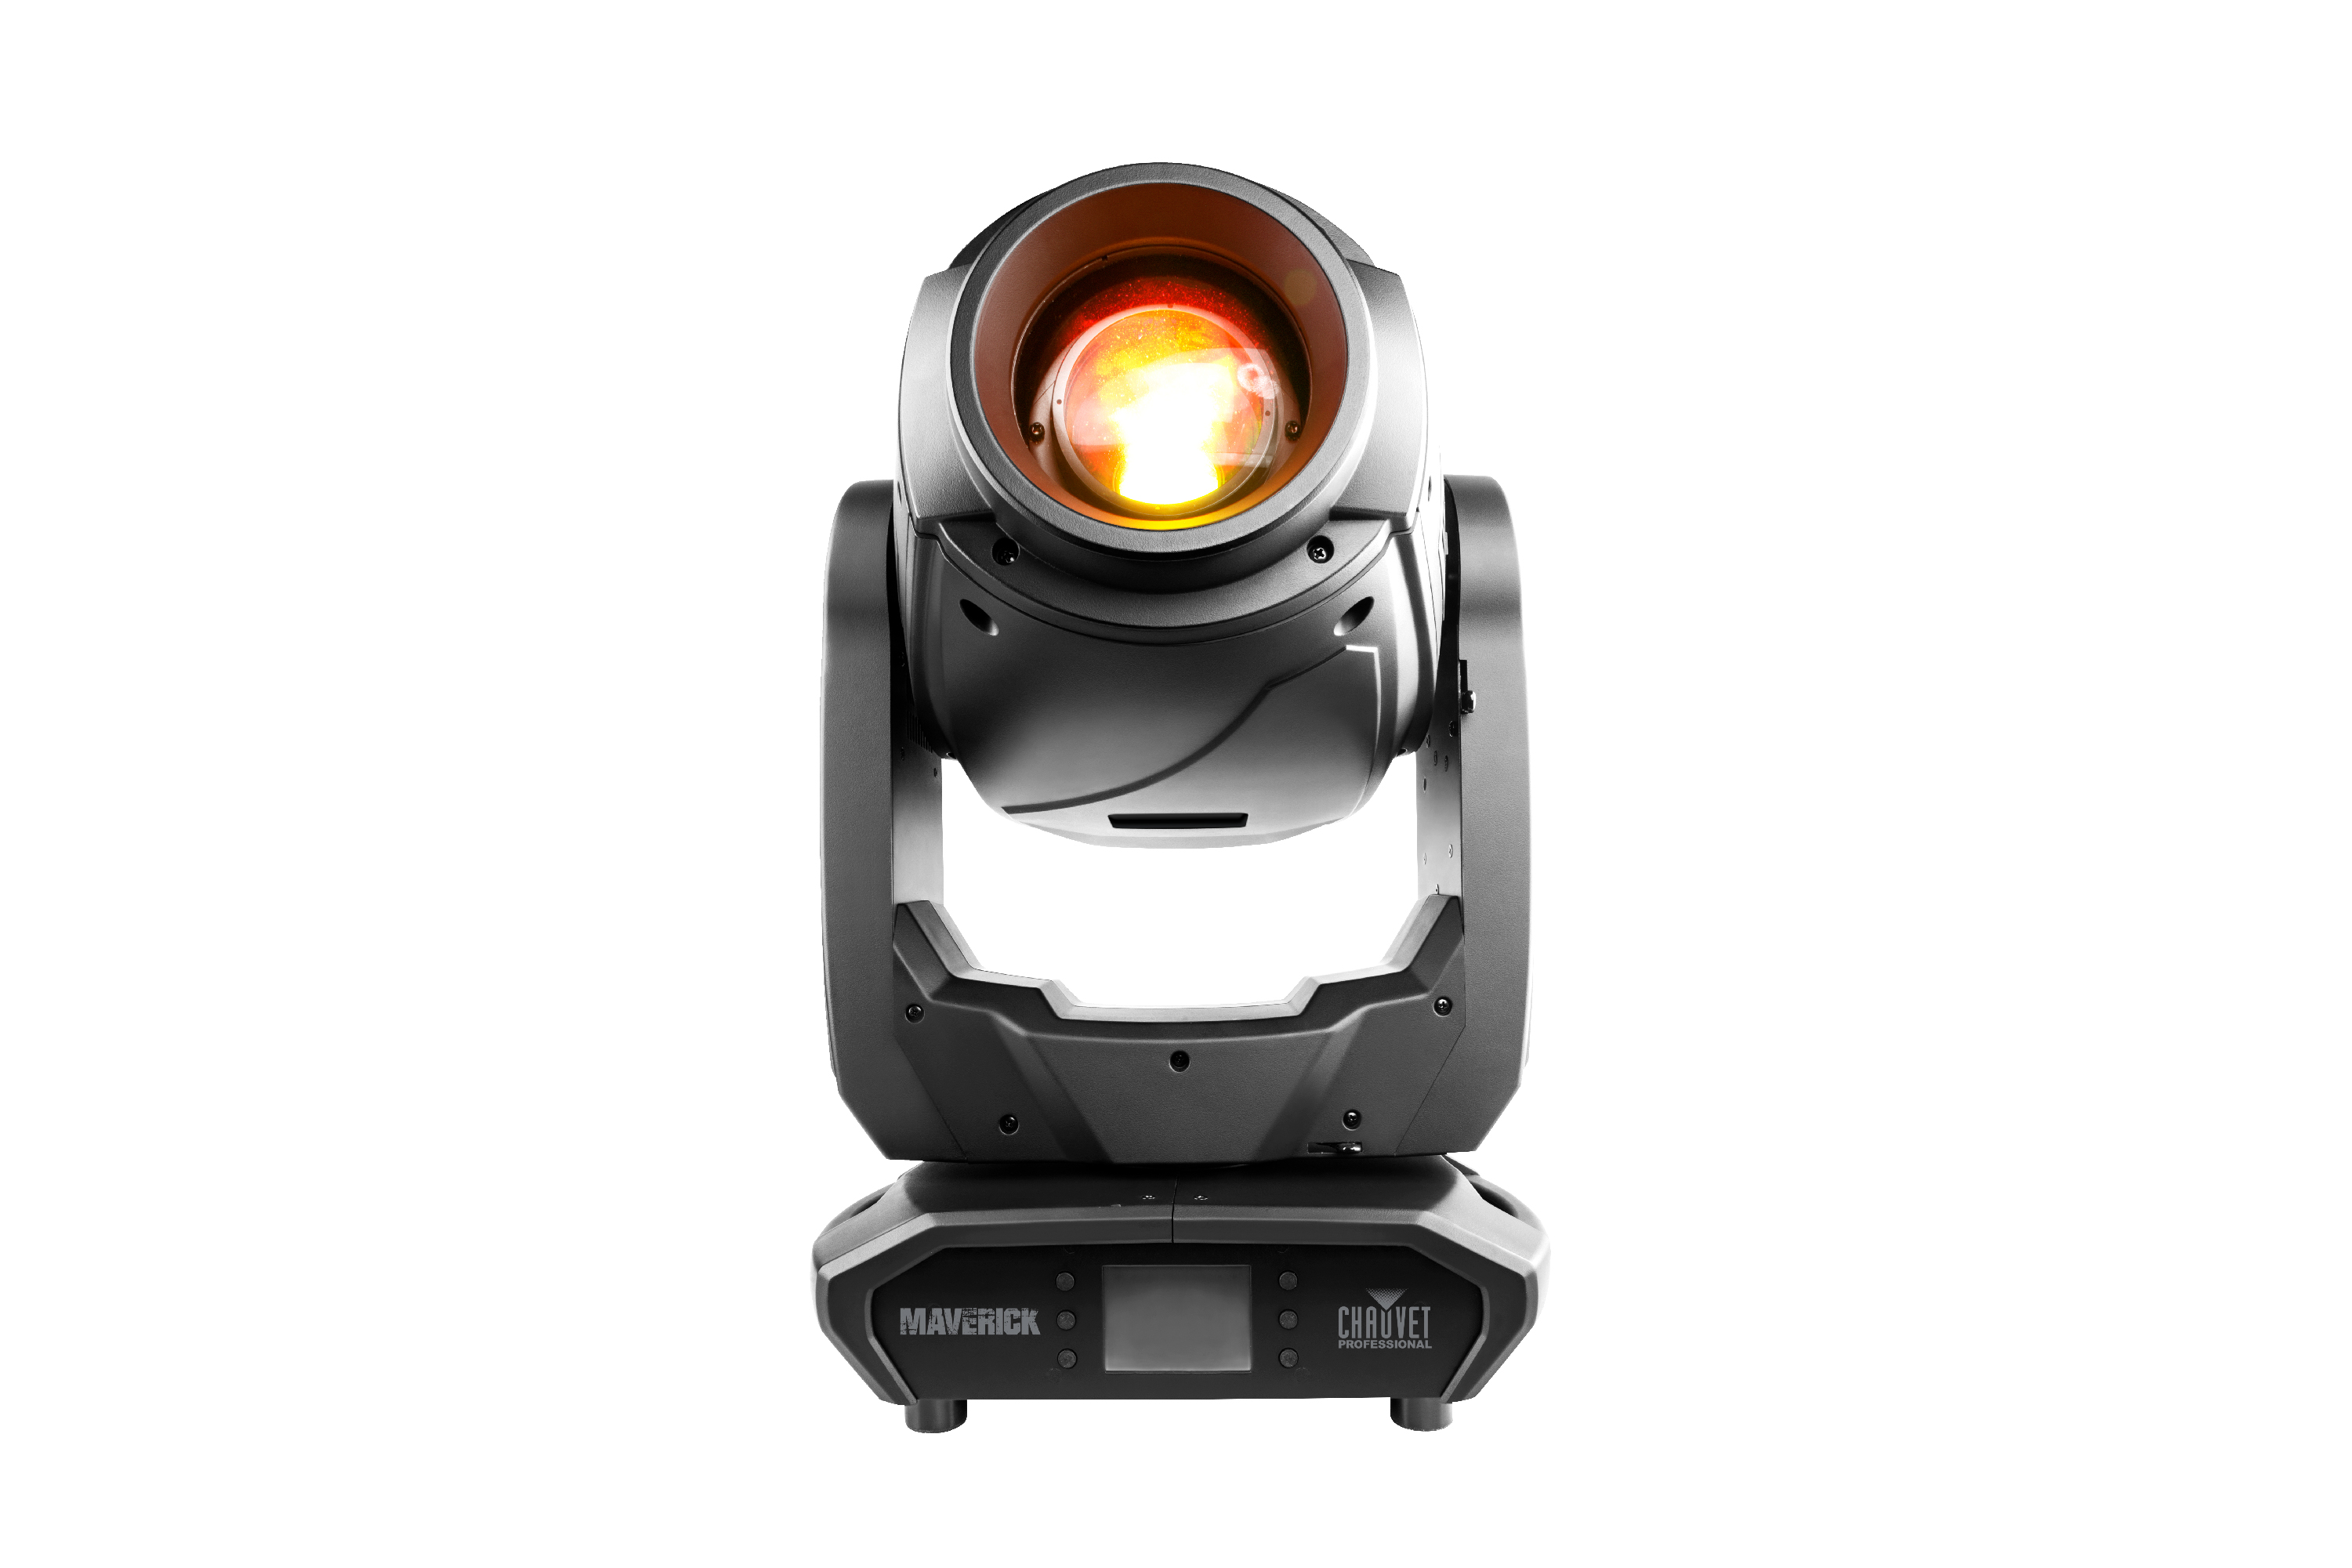 R&W Chauvet Maverick MK2 moving spot light